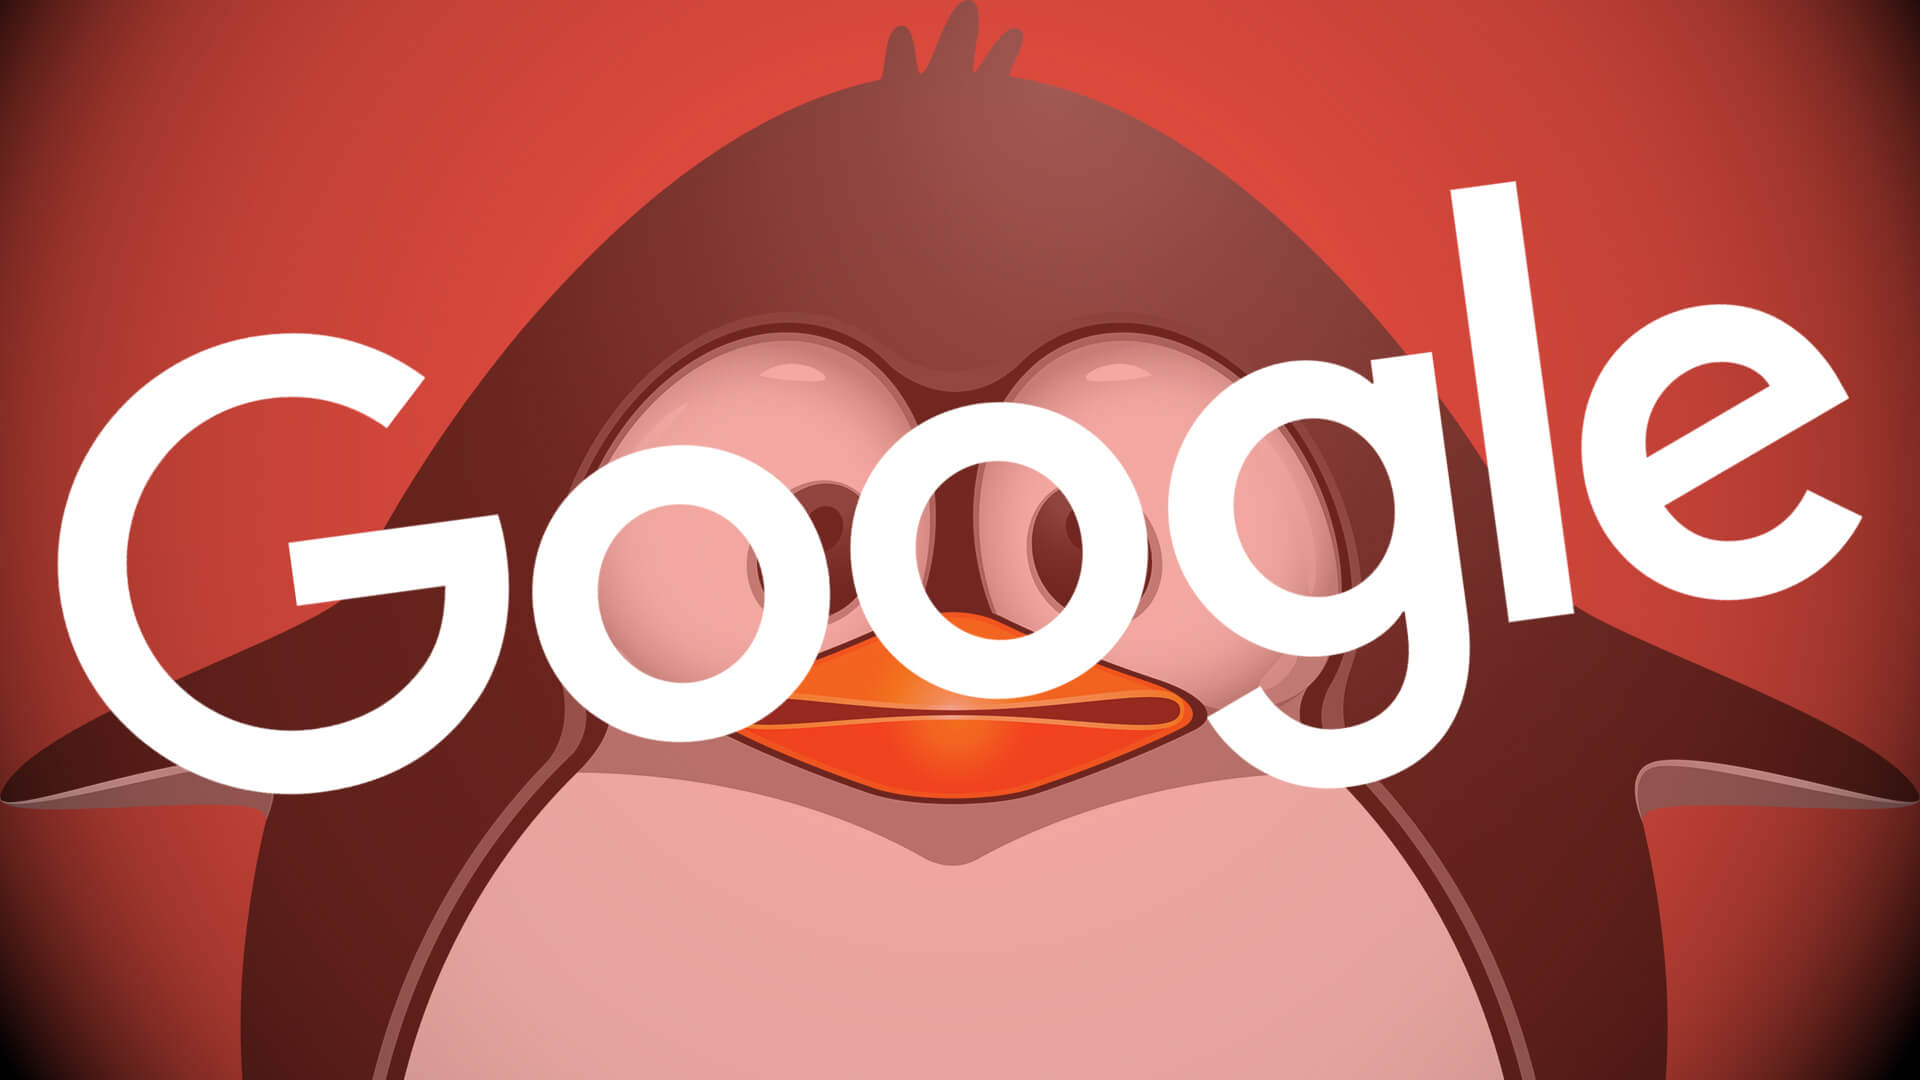 Google Penguin does not penalize for bad links, happy Penguin, no penalize Penguin, badlinks